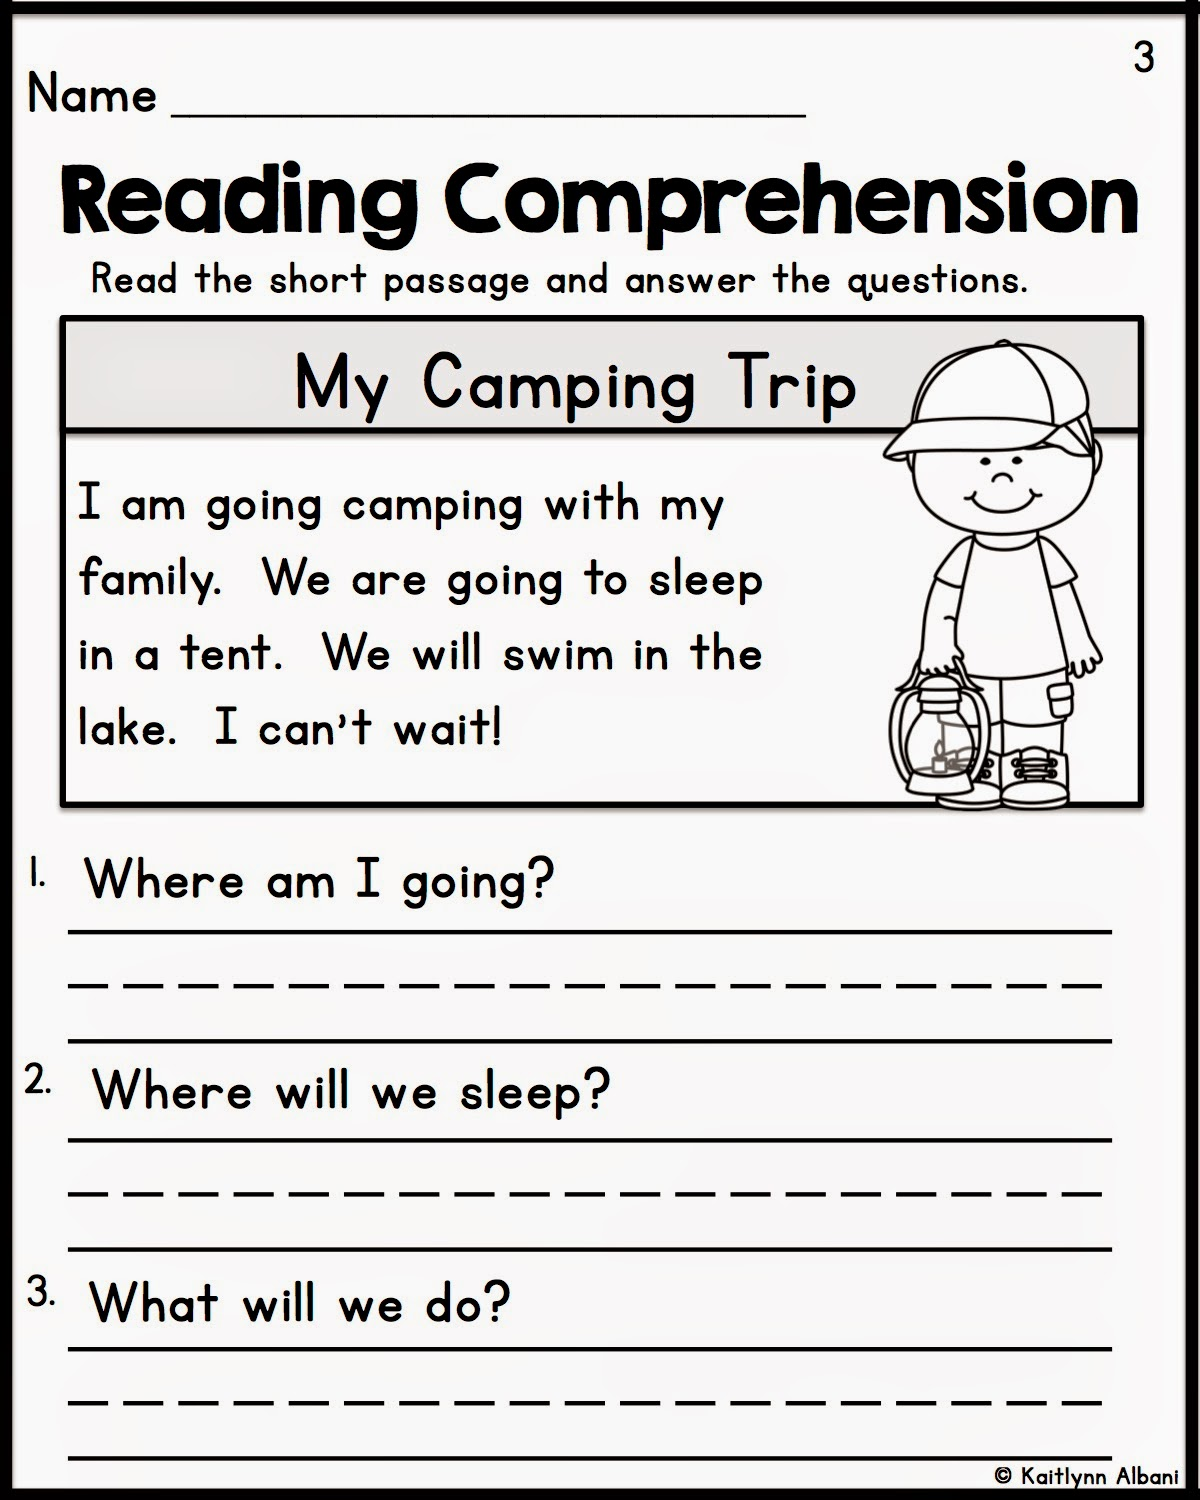 Printables Free Kindergarten Reading Comprehension Worksheets reading comprehension worksheets kindergarten this math worksheet prehension for the best and kindergarten